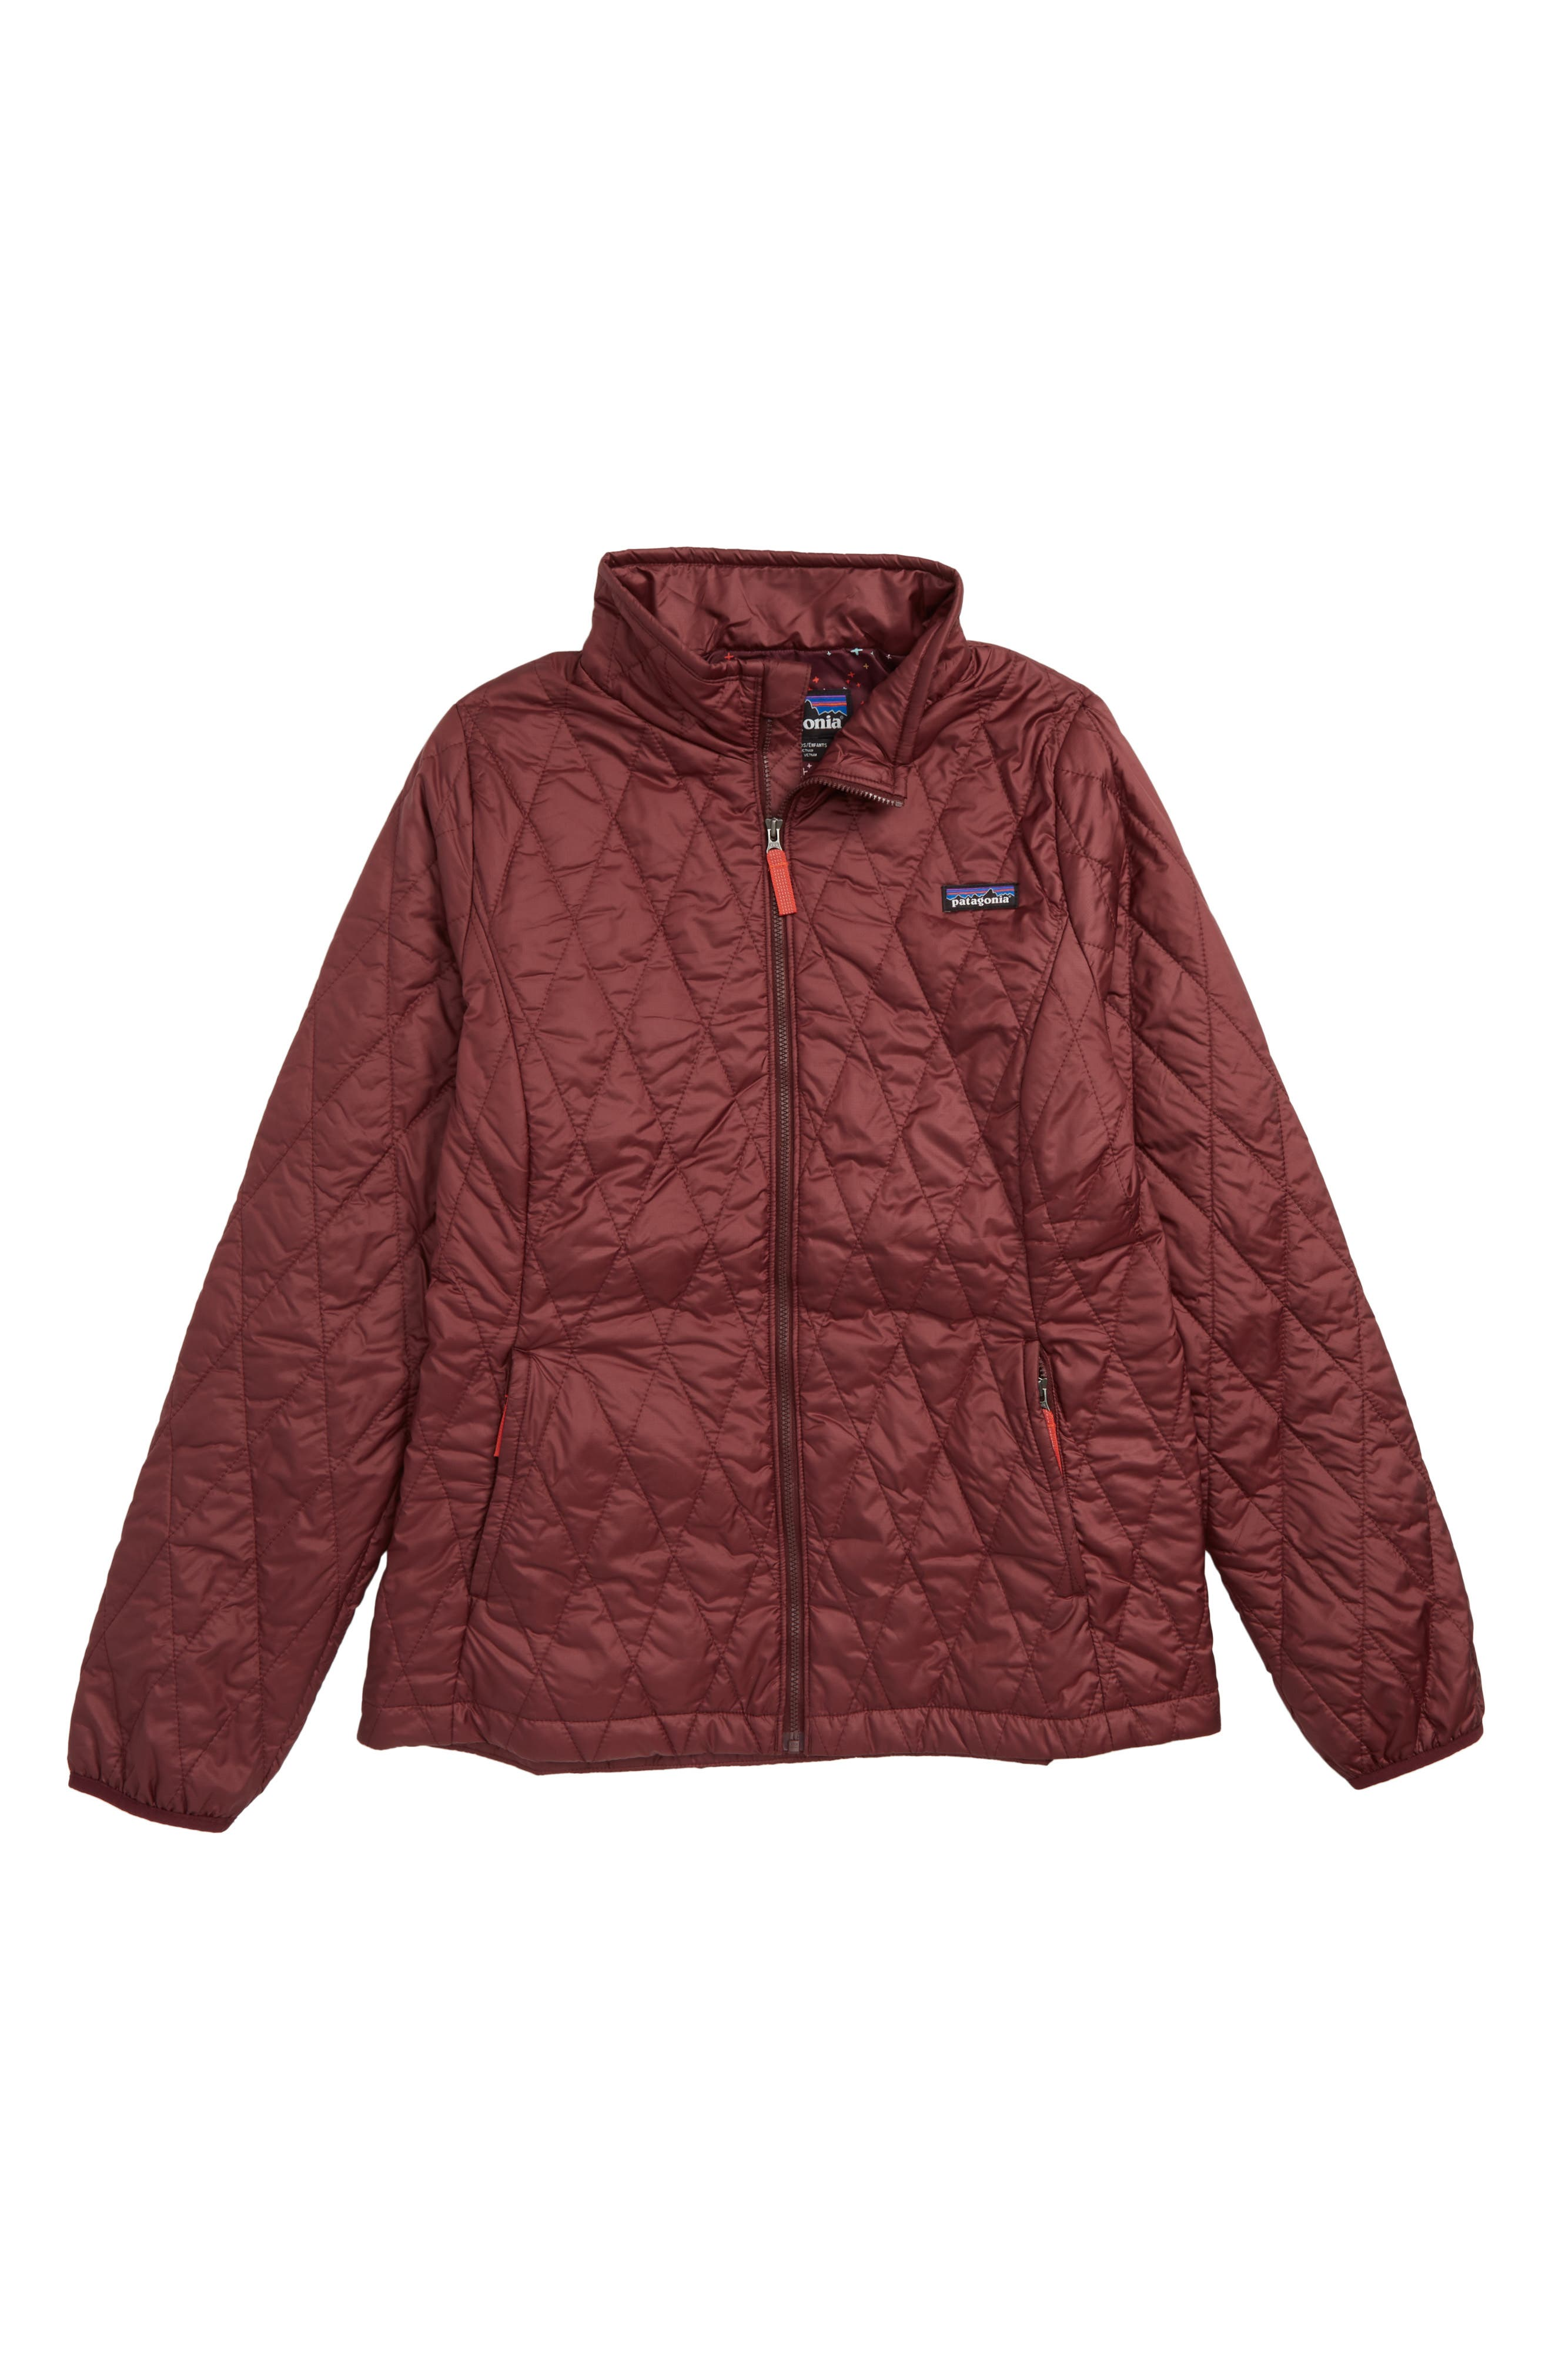 Nano Puff<sup>®</sup> Quilted Water Resistant Jacket,                             Main thumbnail 1, color,                             DARK CURRANT